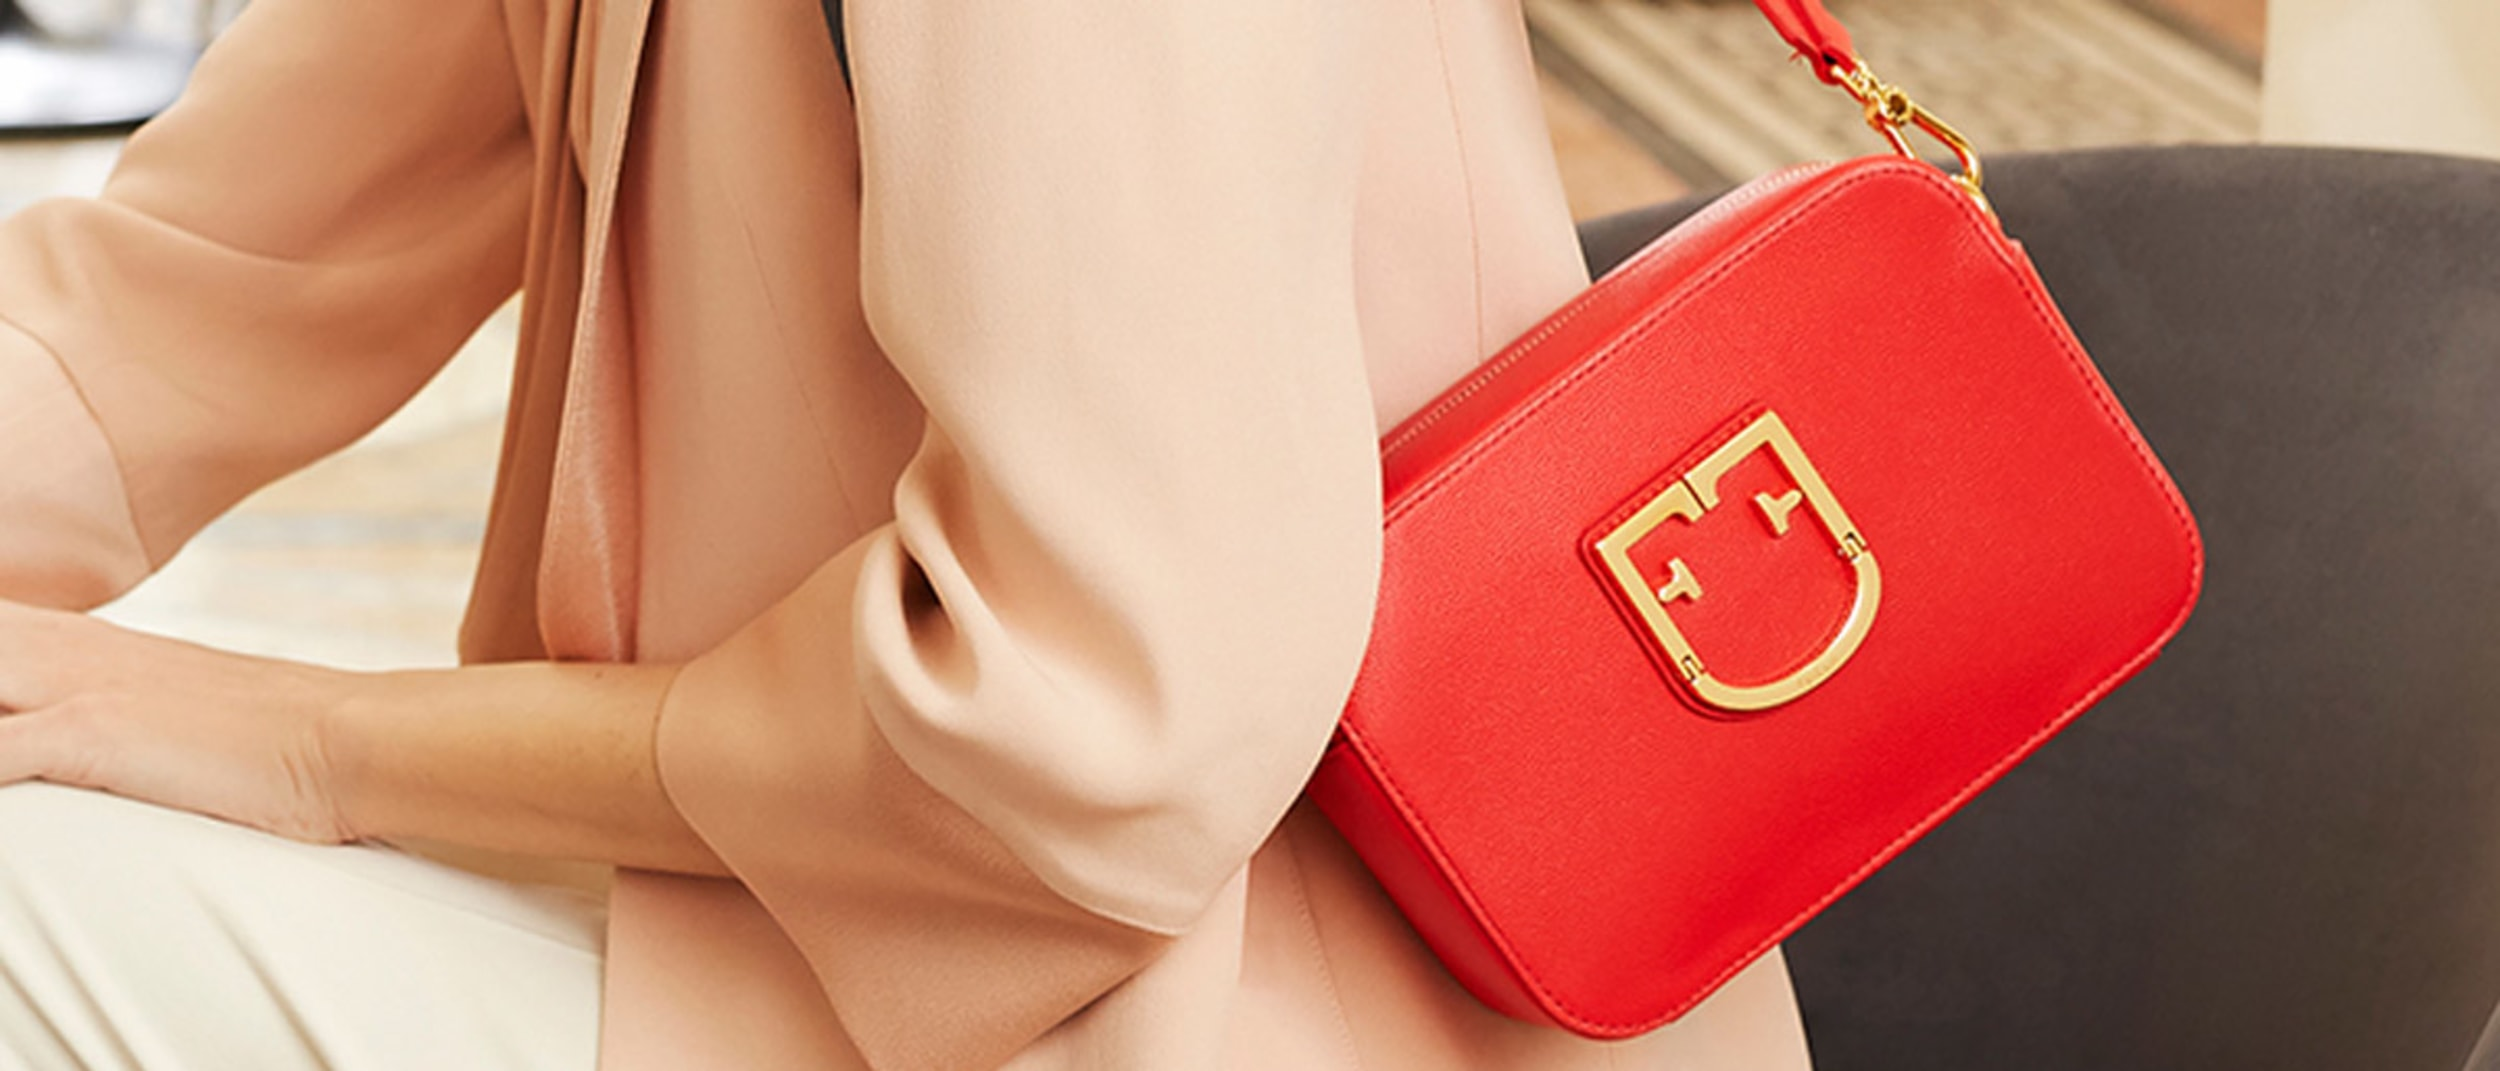 Shop up to 50% off bags, shoes & accessories at Furla